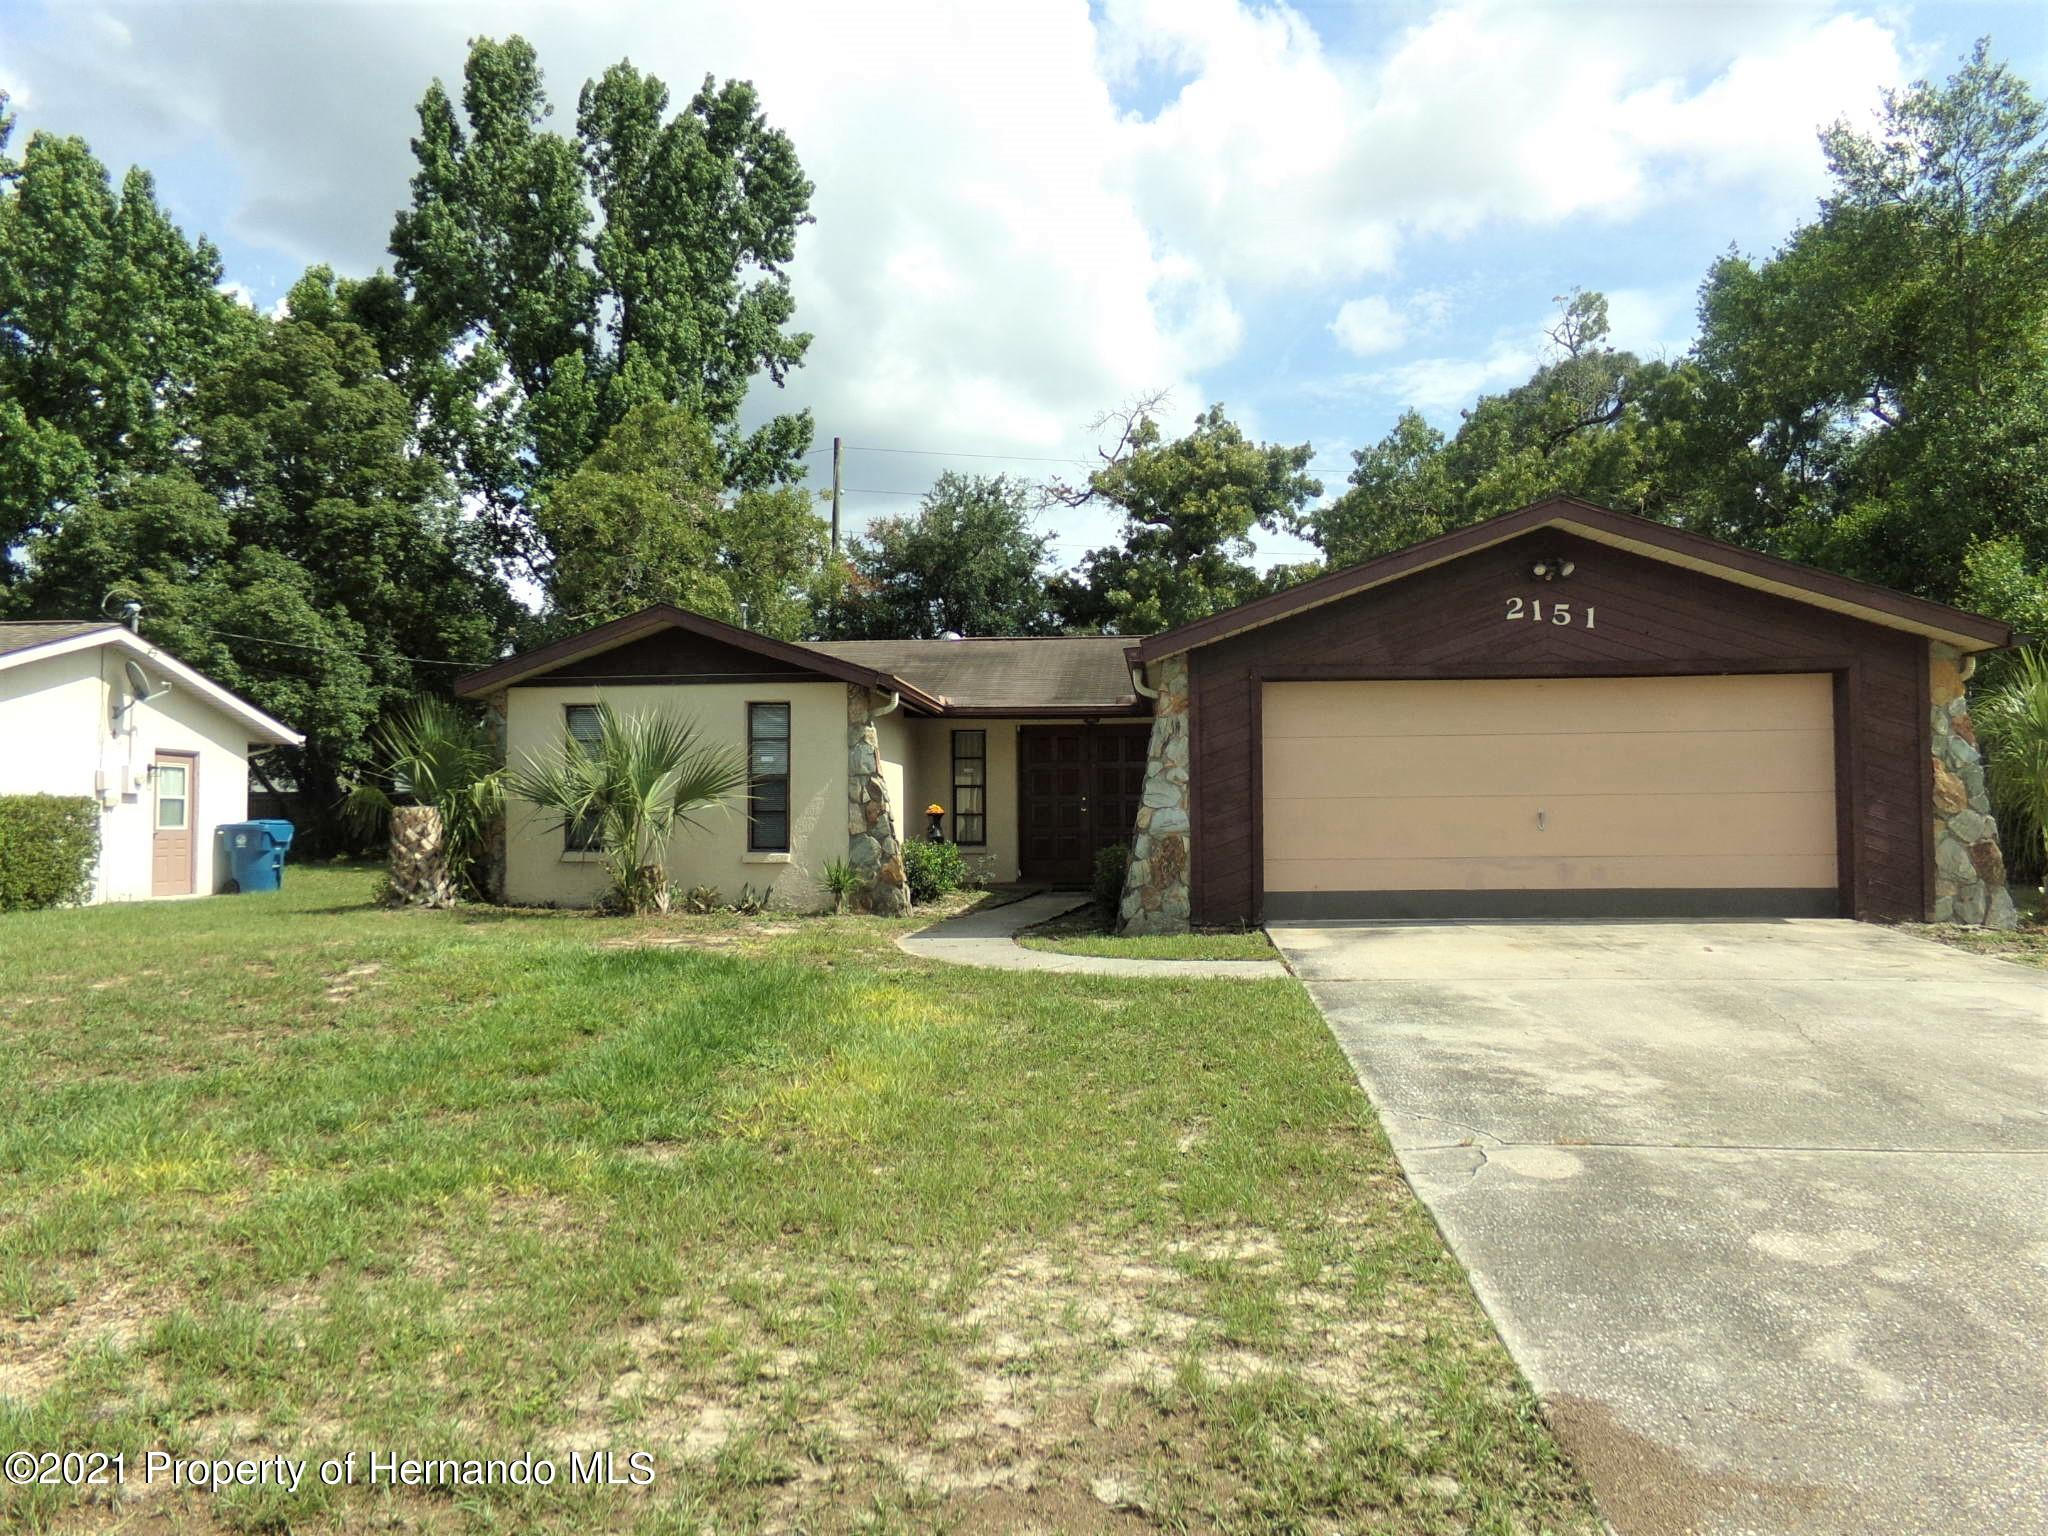 Image 1 For 2151 Canfield Drive